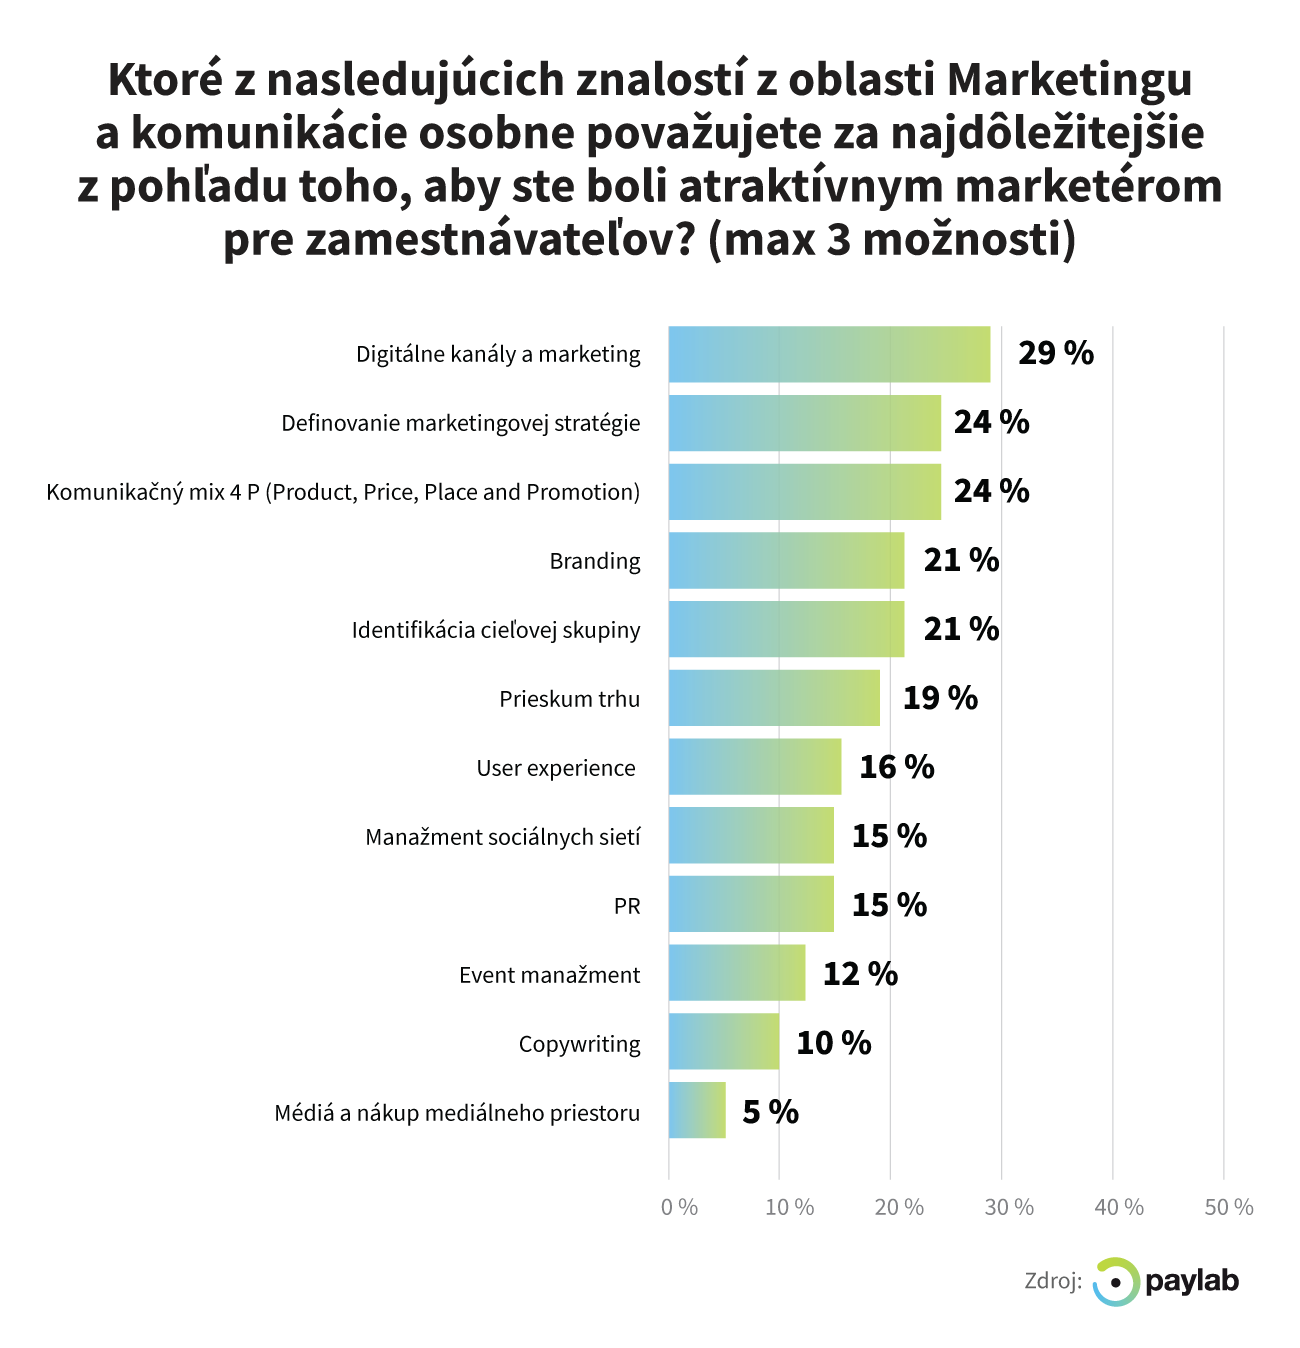 specificke oblasti marketingu